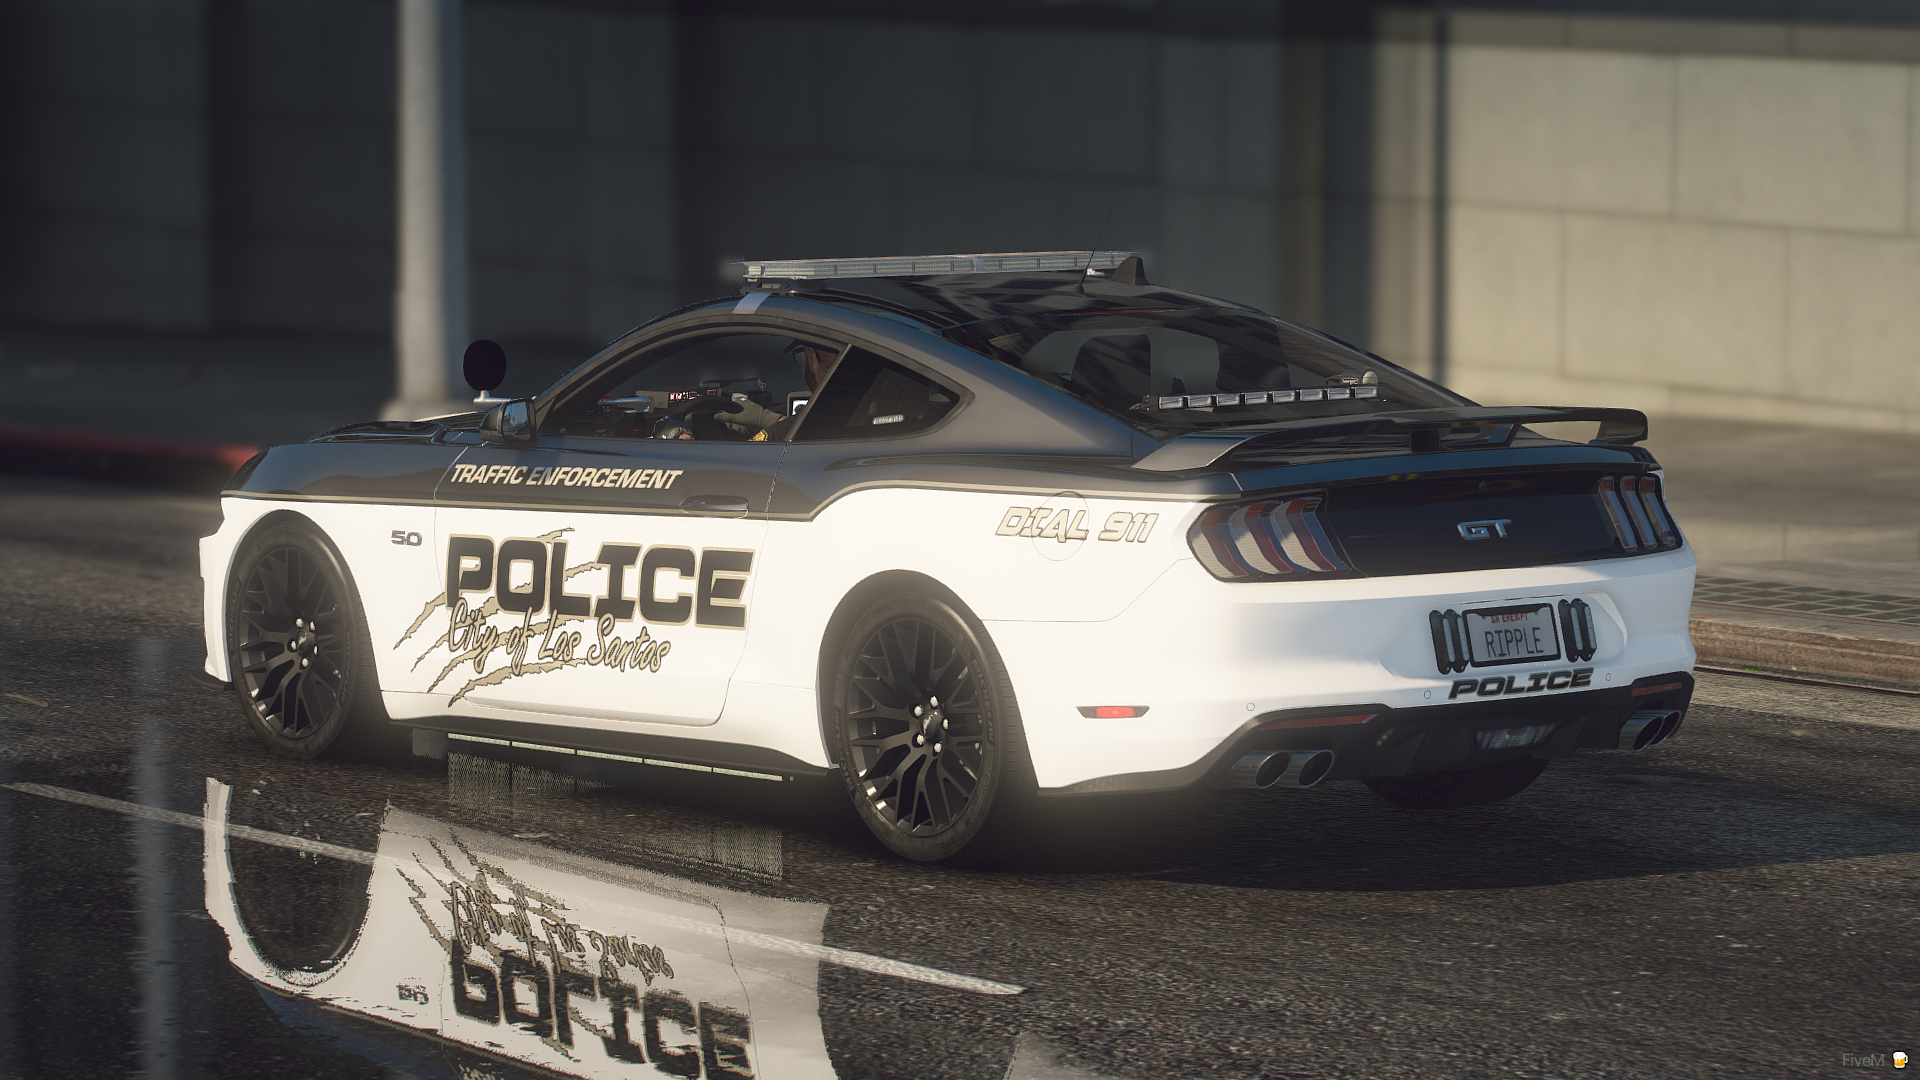 2019 Ford Mustang Traffic Enforcement Unit